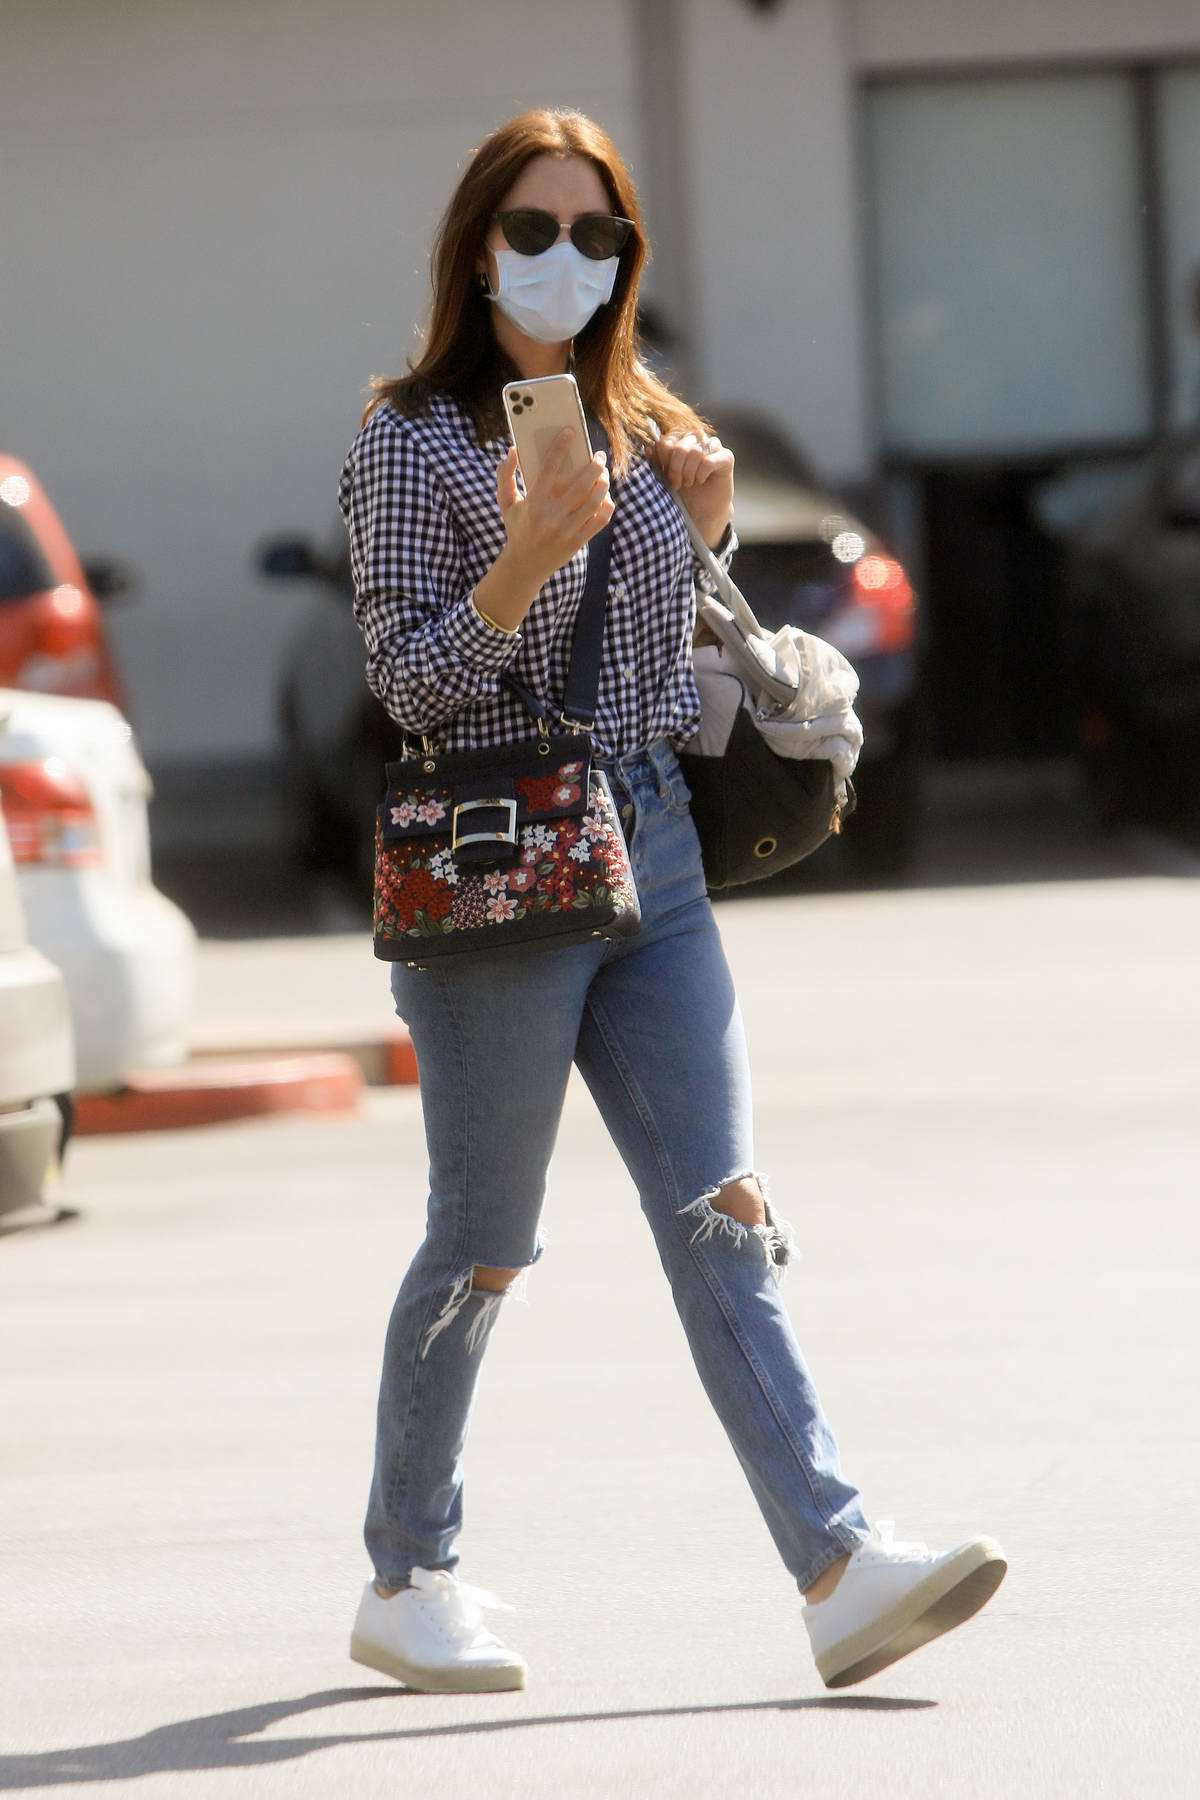 Katharine McPhee wears a checkered shirt, ripped blue jeans and a face mask while heading out in Los Angeles